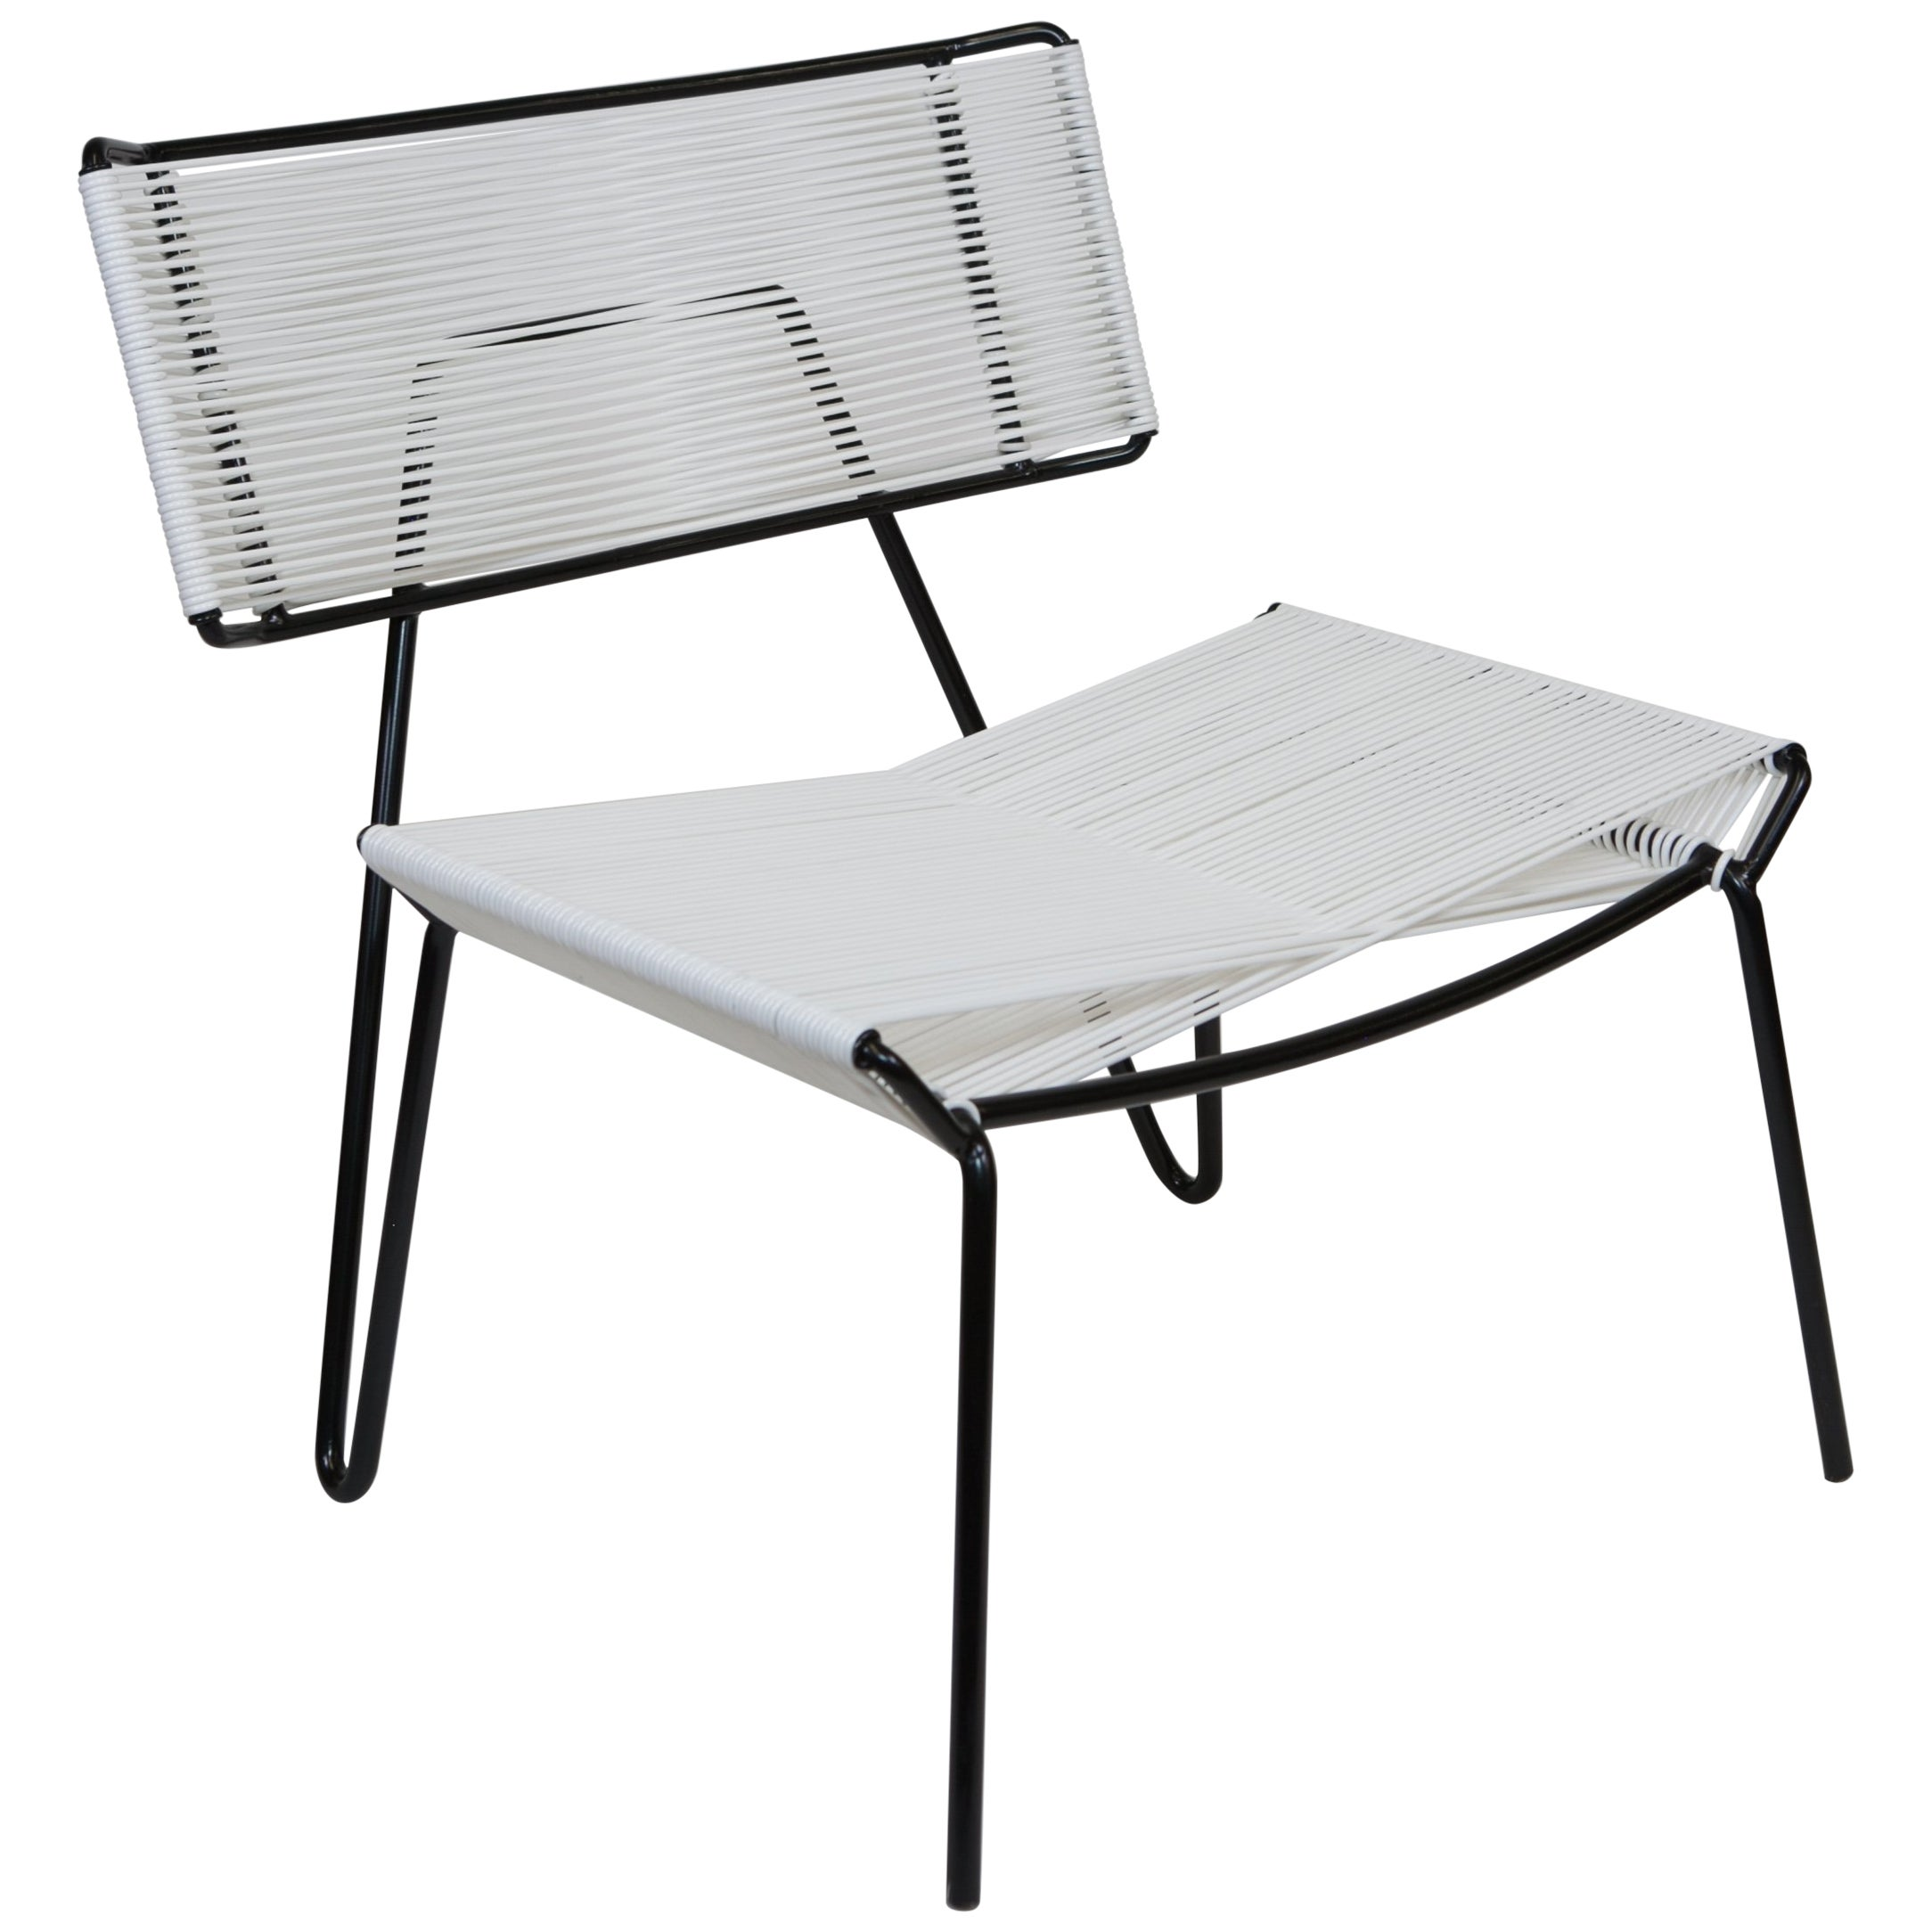 White Outdoor Lounge Chair Handmade Midcentury Style Outdoor Lounge Chair Black With White Pvc In Stock